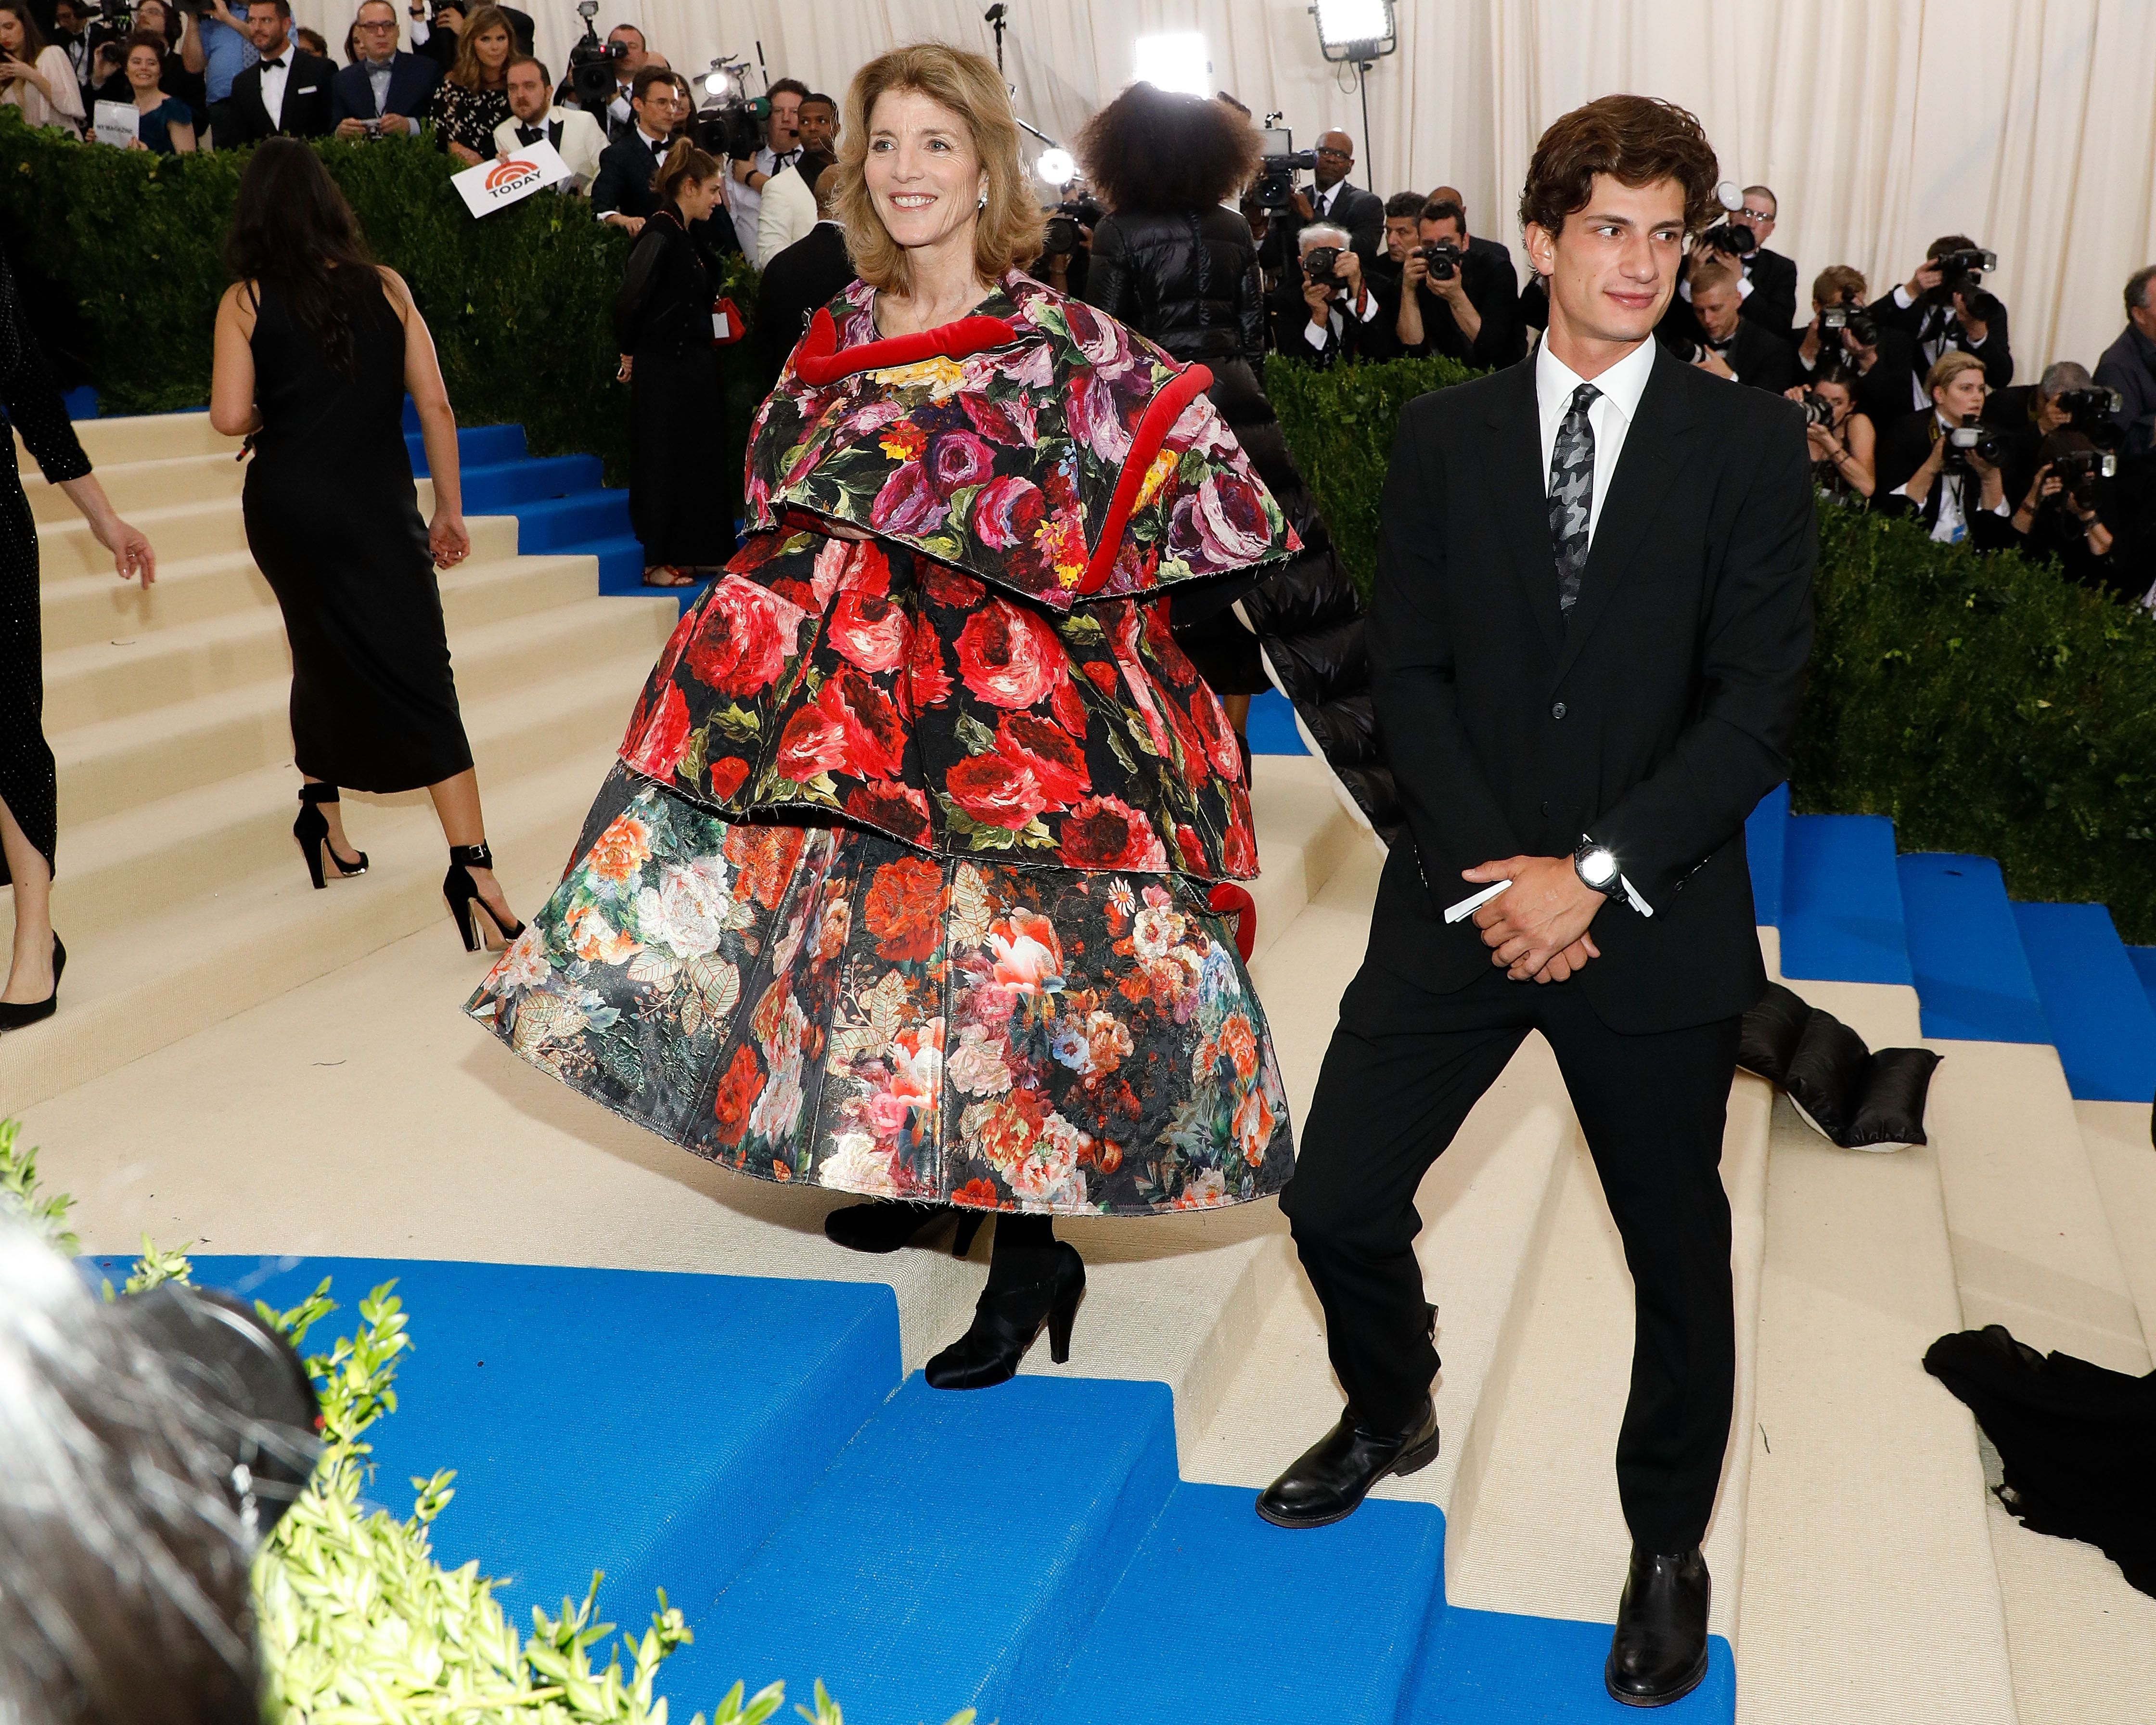 Caroline Kennedy Made the Met Gala a Family Affair This Year